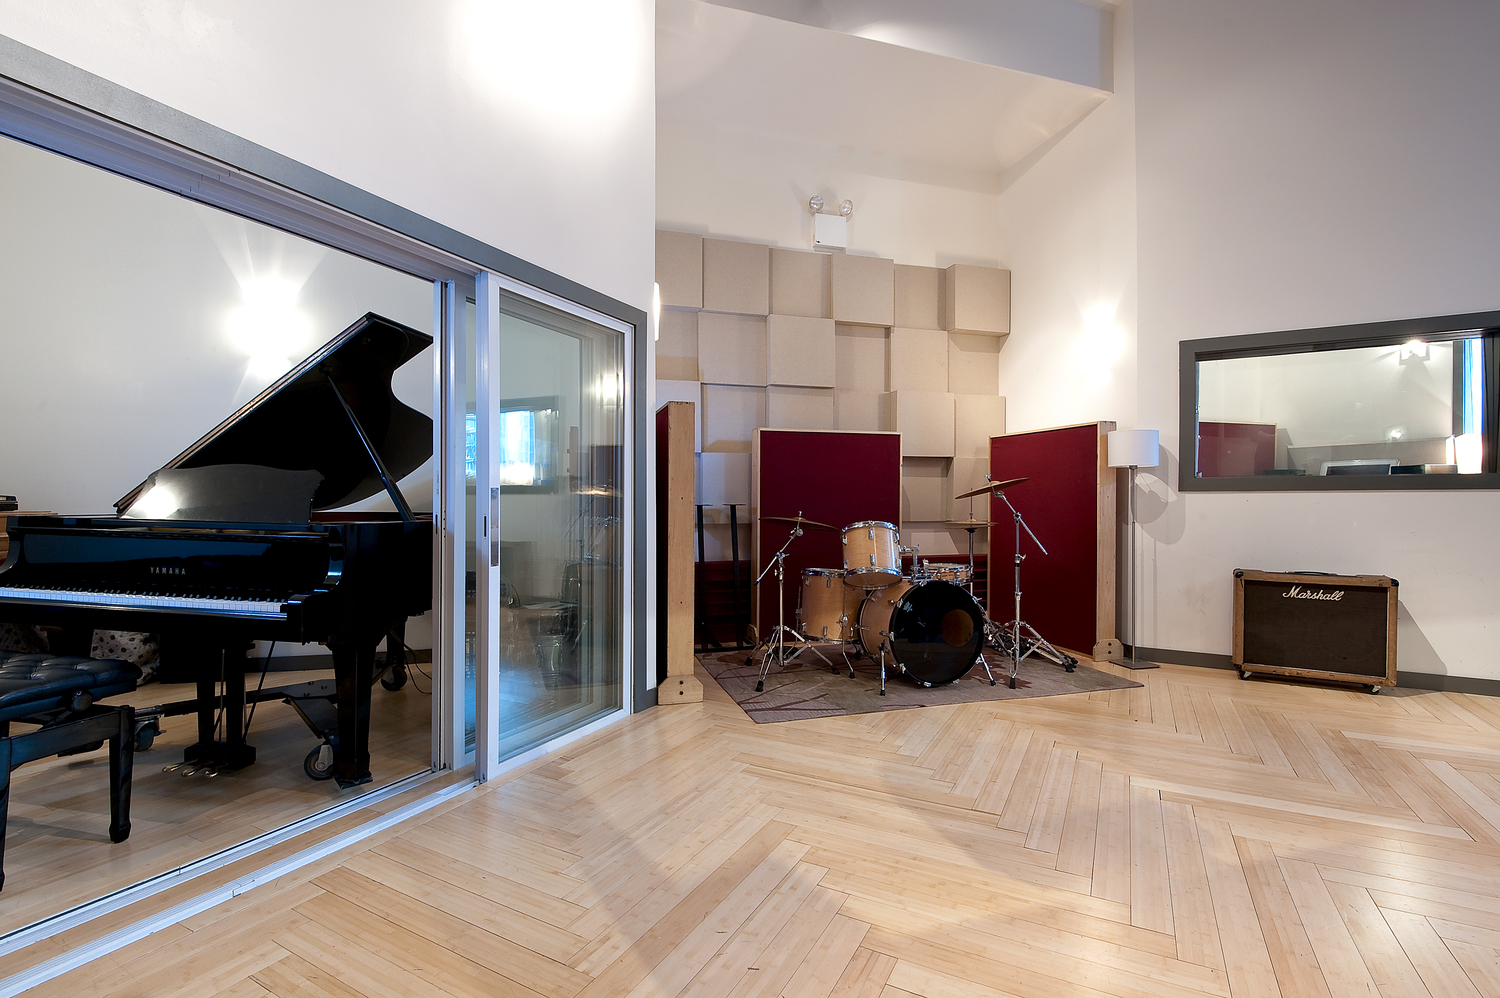 Mezzanine Studio — Dubway Studios, NYC | Audio